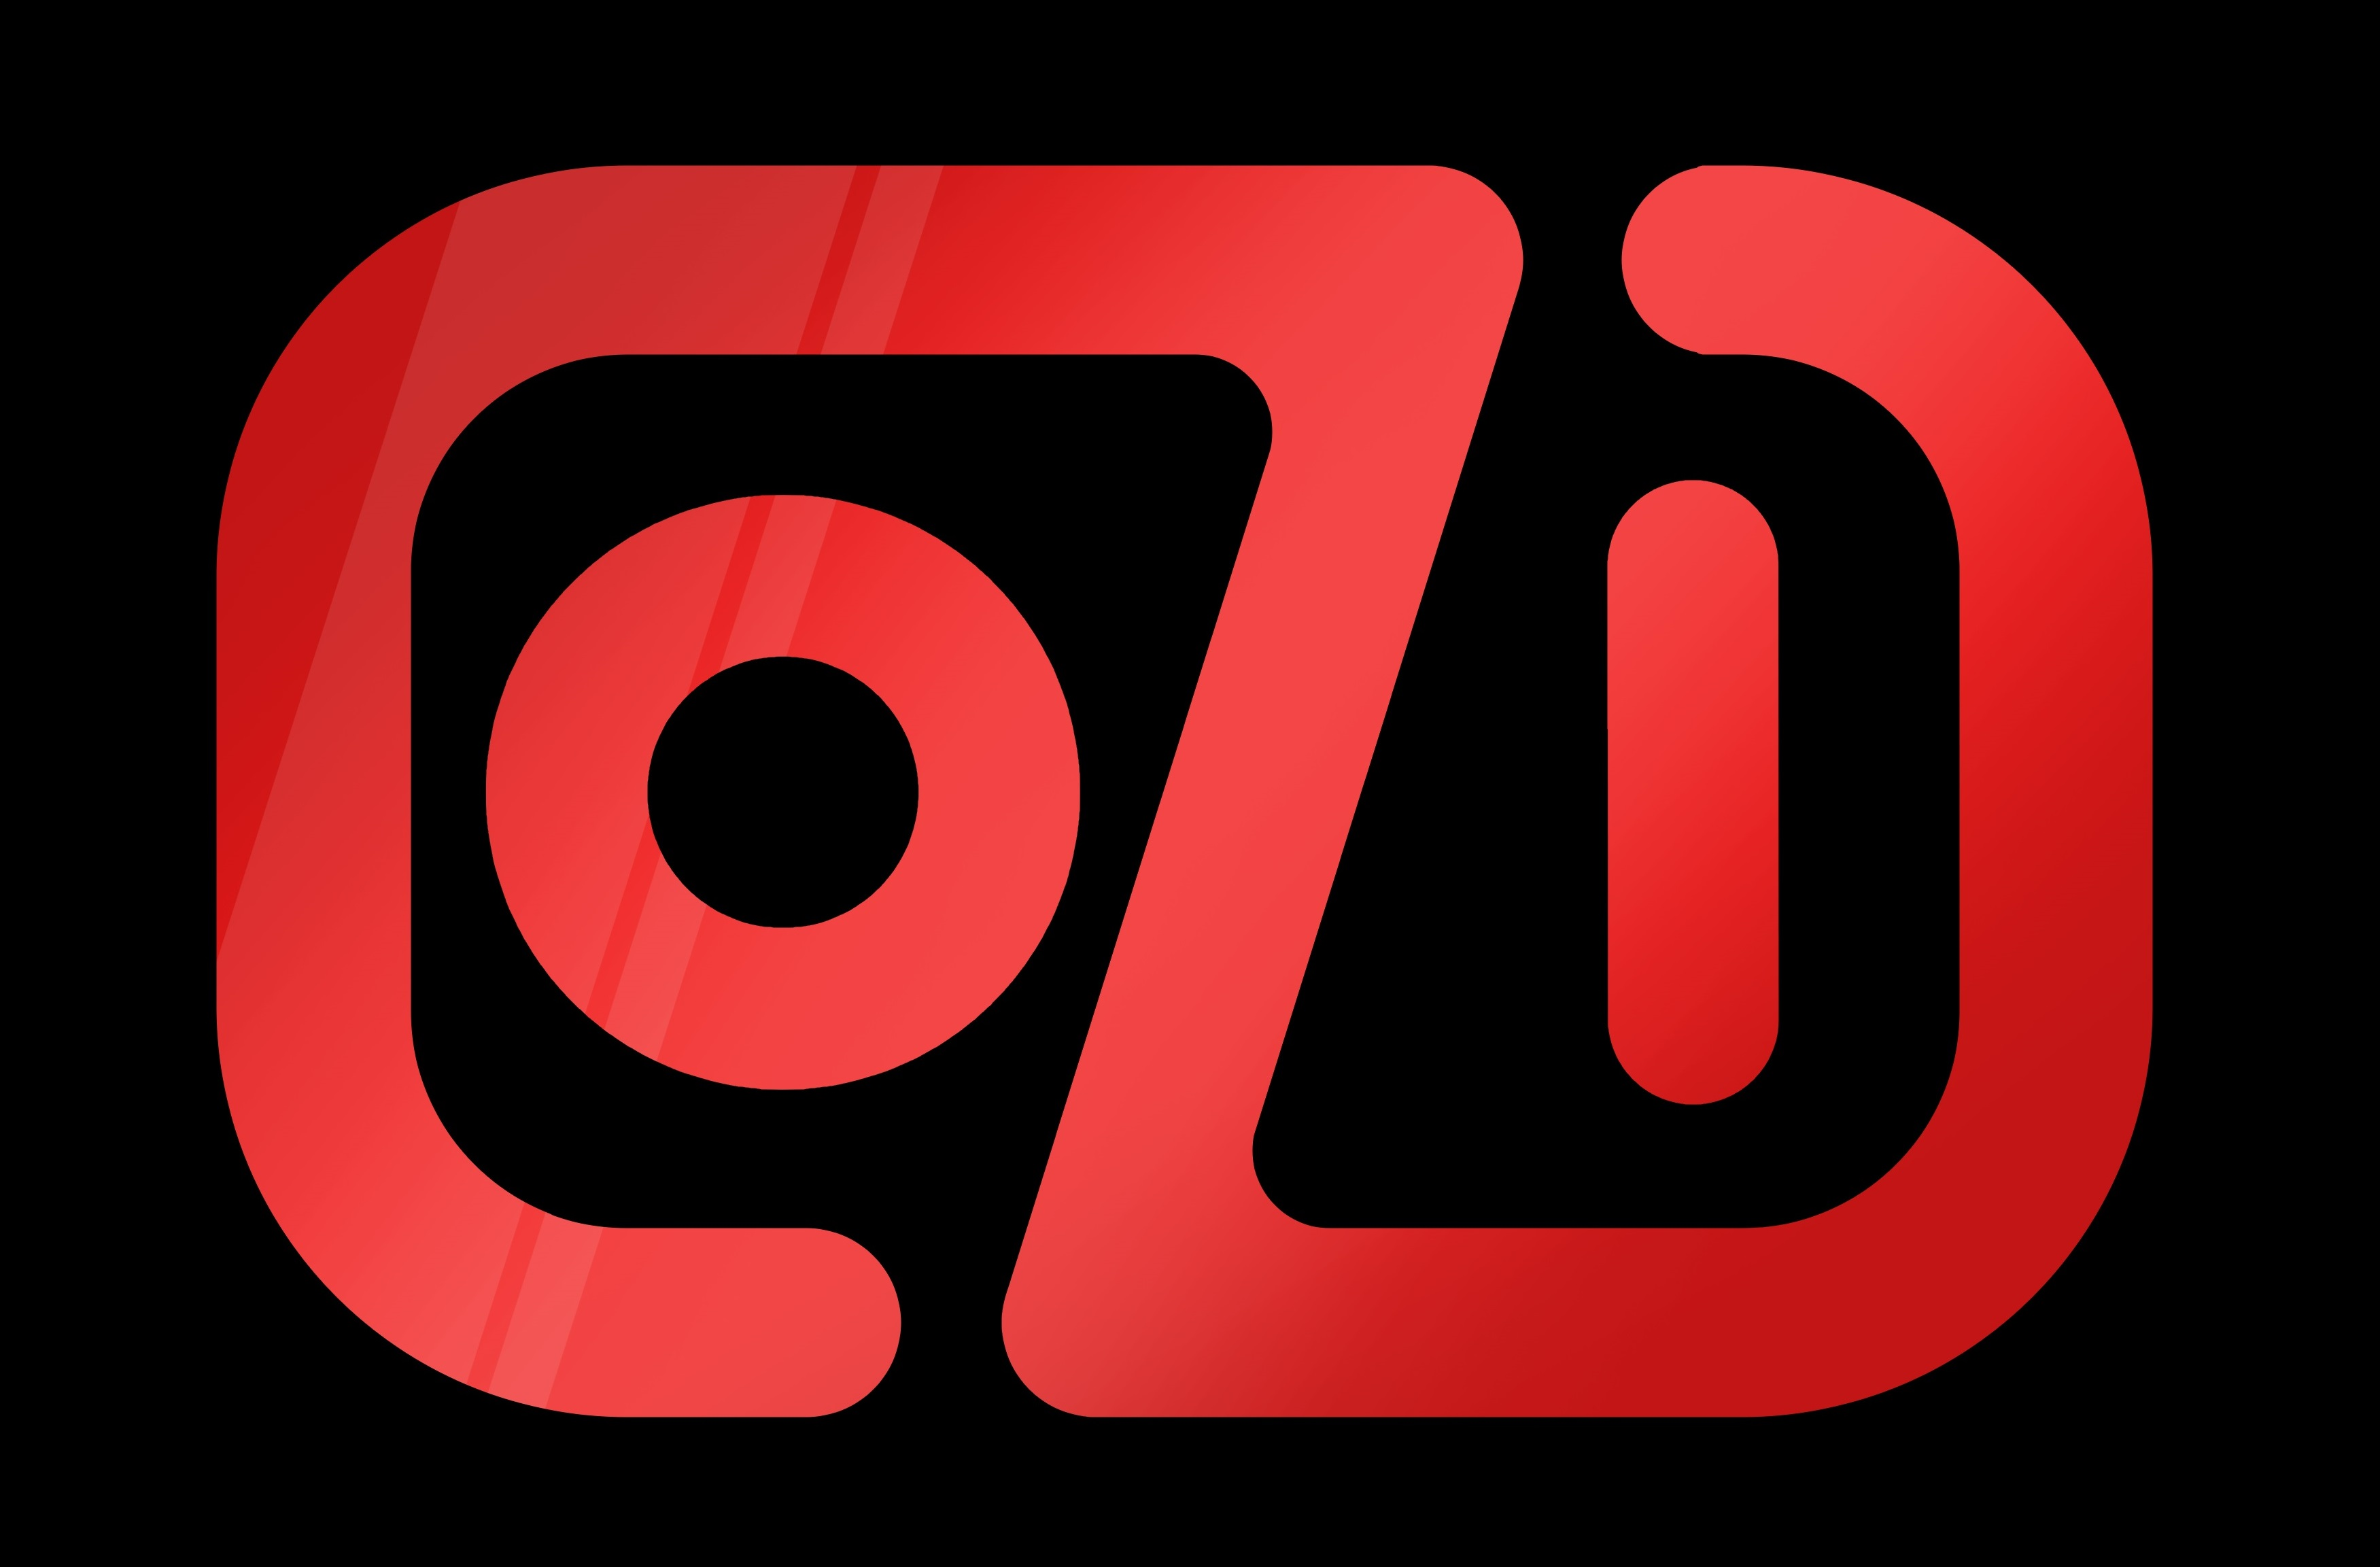 zbit:connect logo